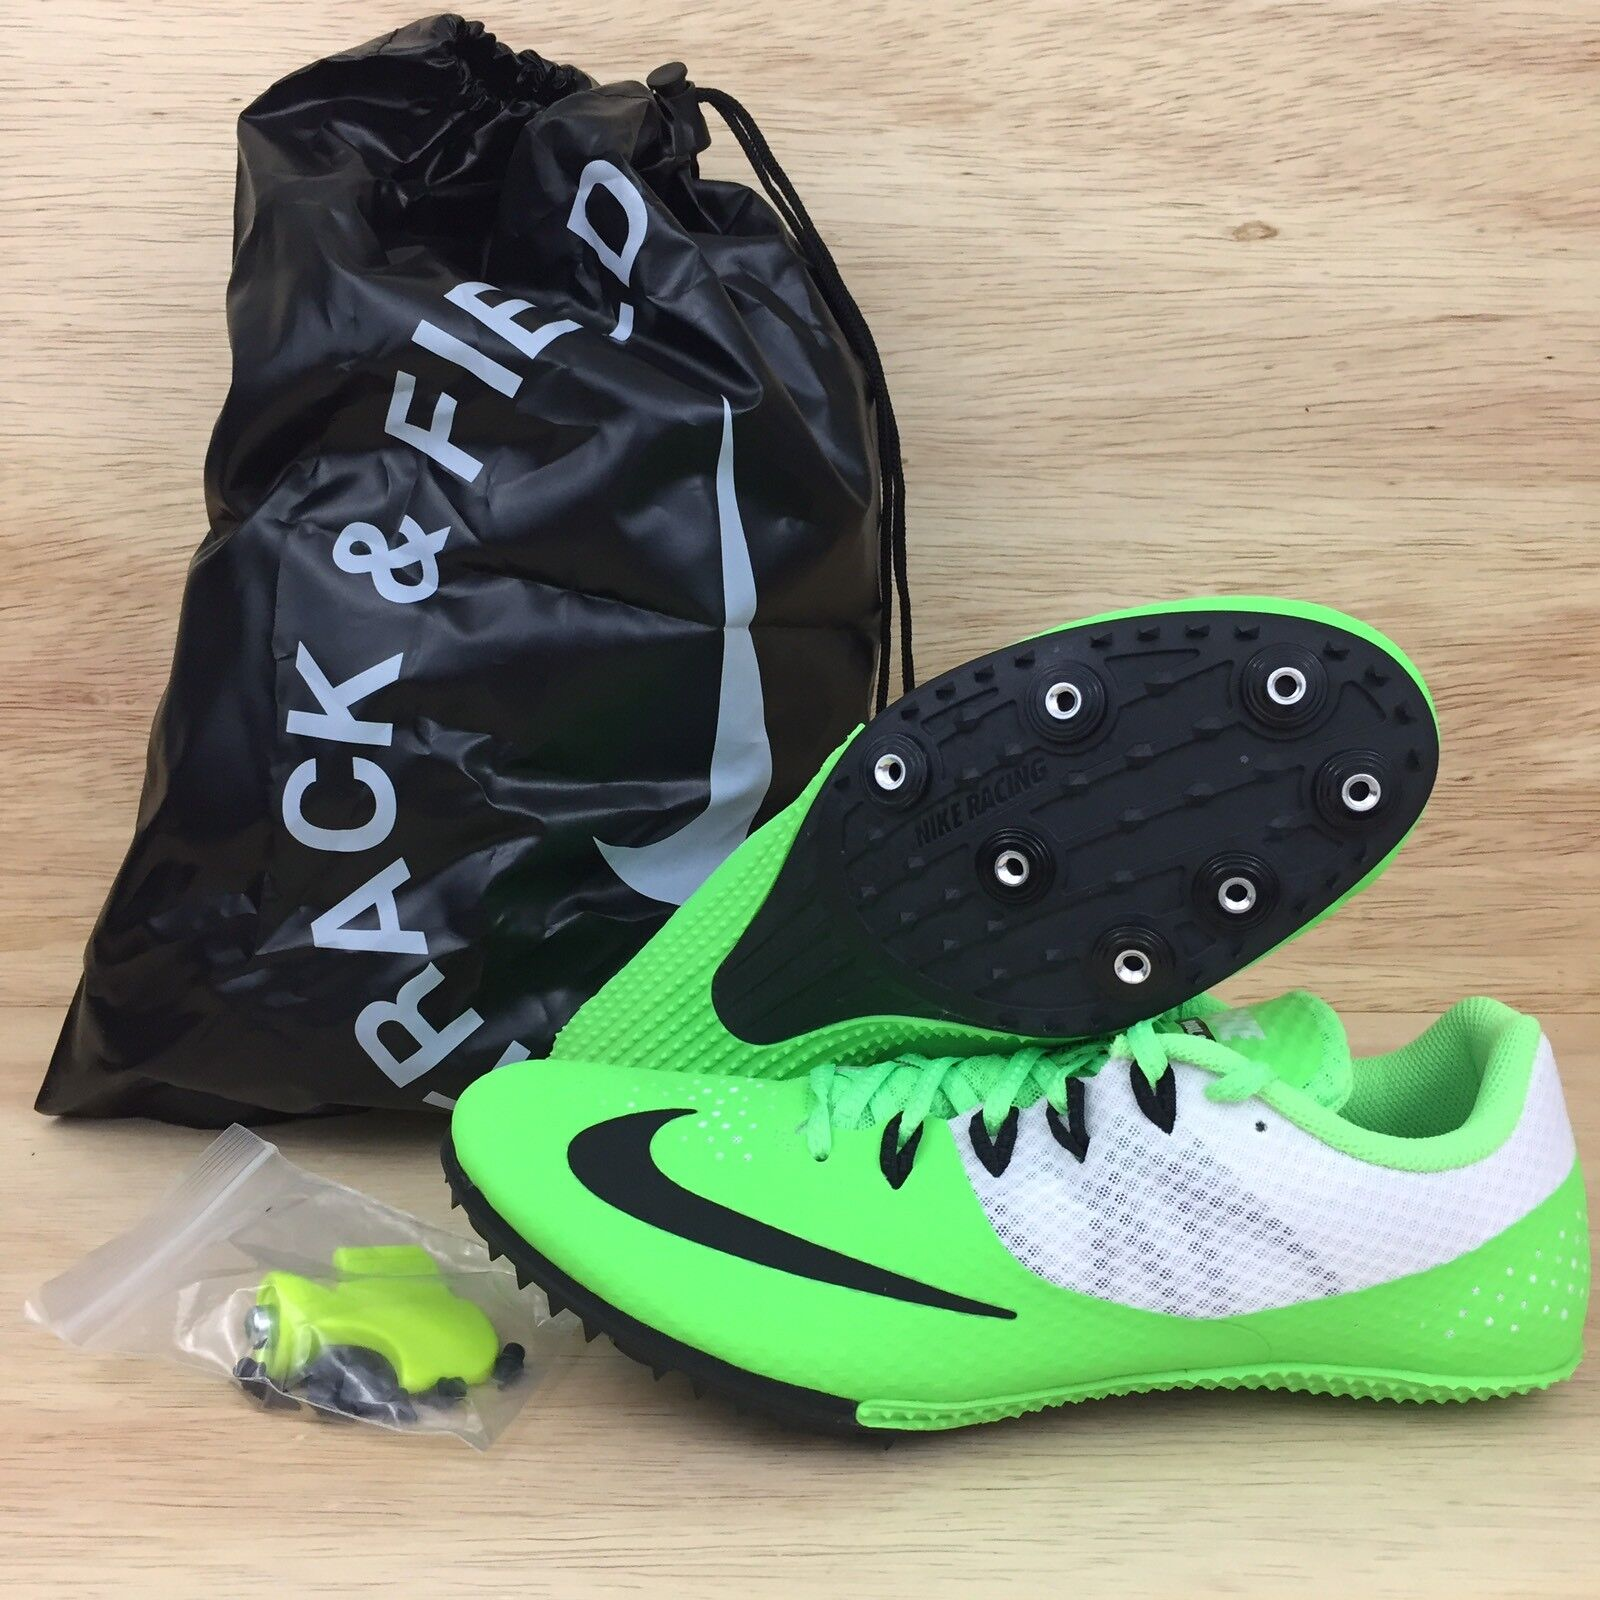 Nike Zoom Rival S8 Mens Track Spikes 806554-300 Voltage Green White Comfortable Brand discount